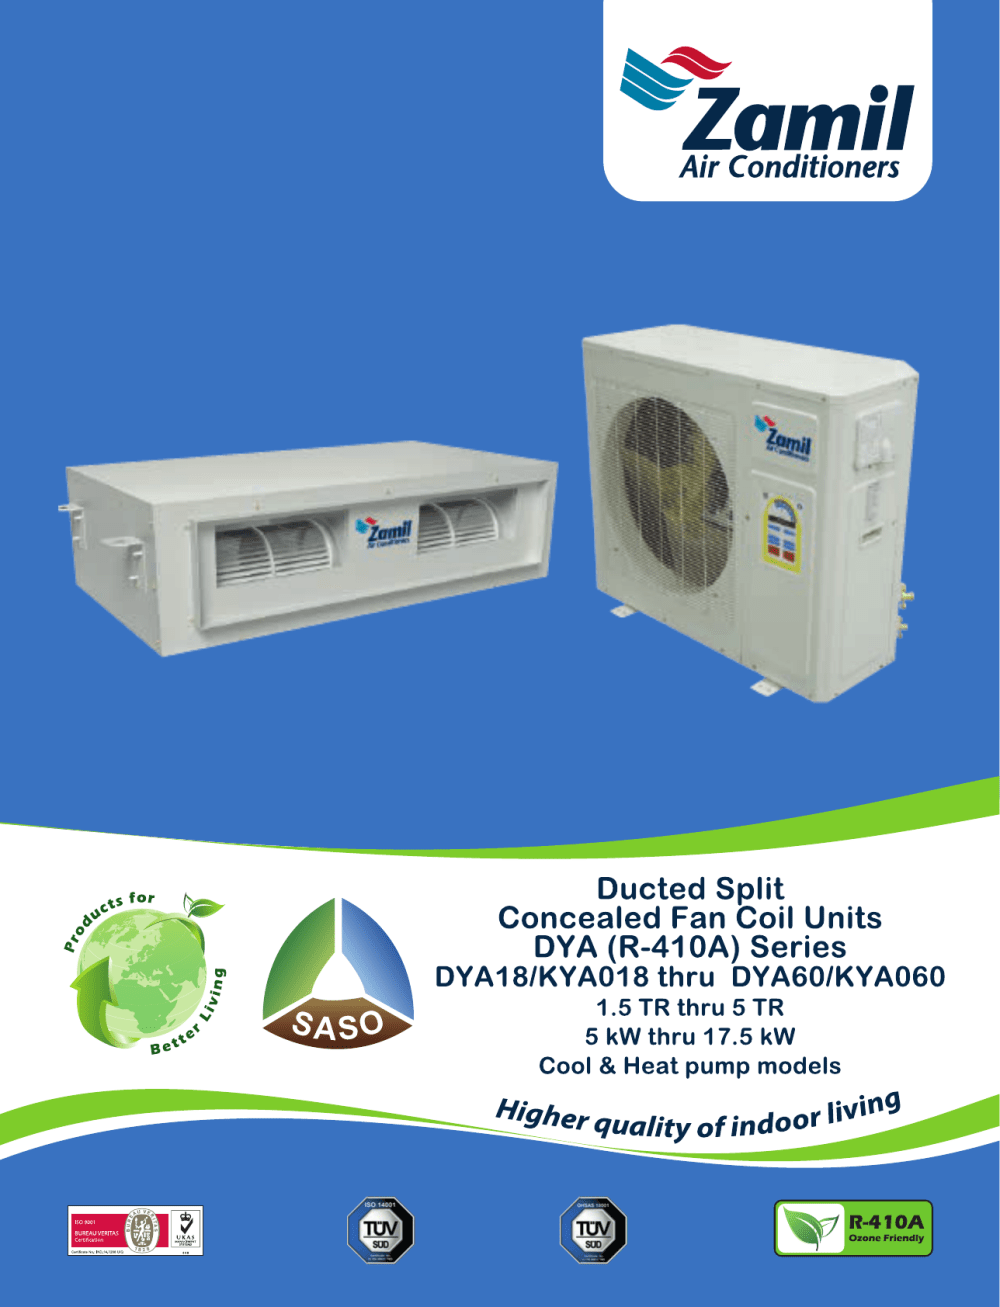 medium resolution of outdoor unit features zamil air conditioners